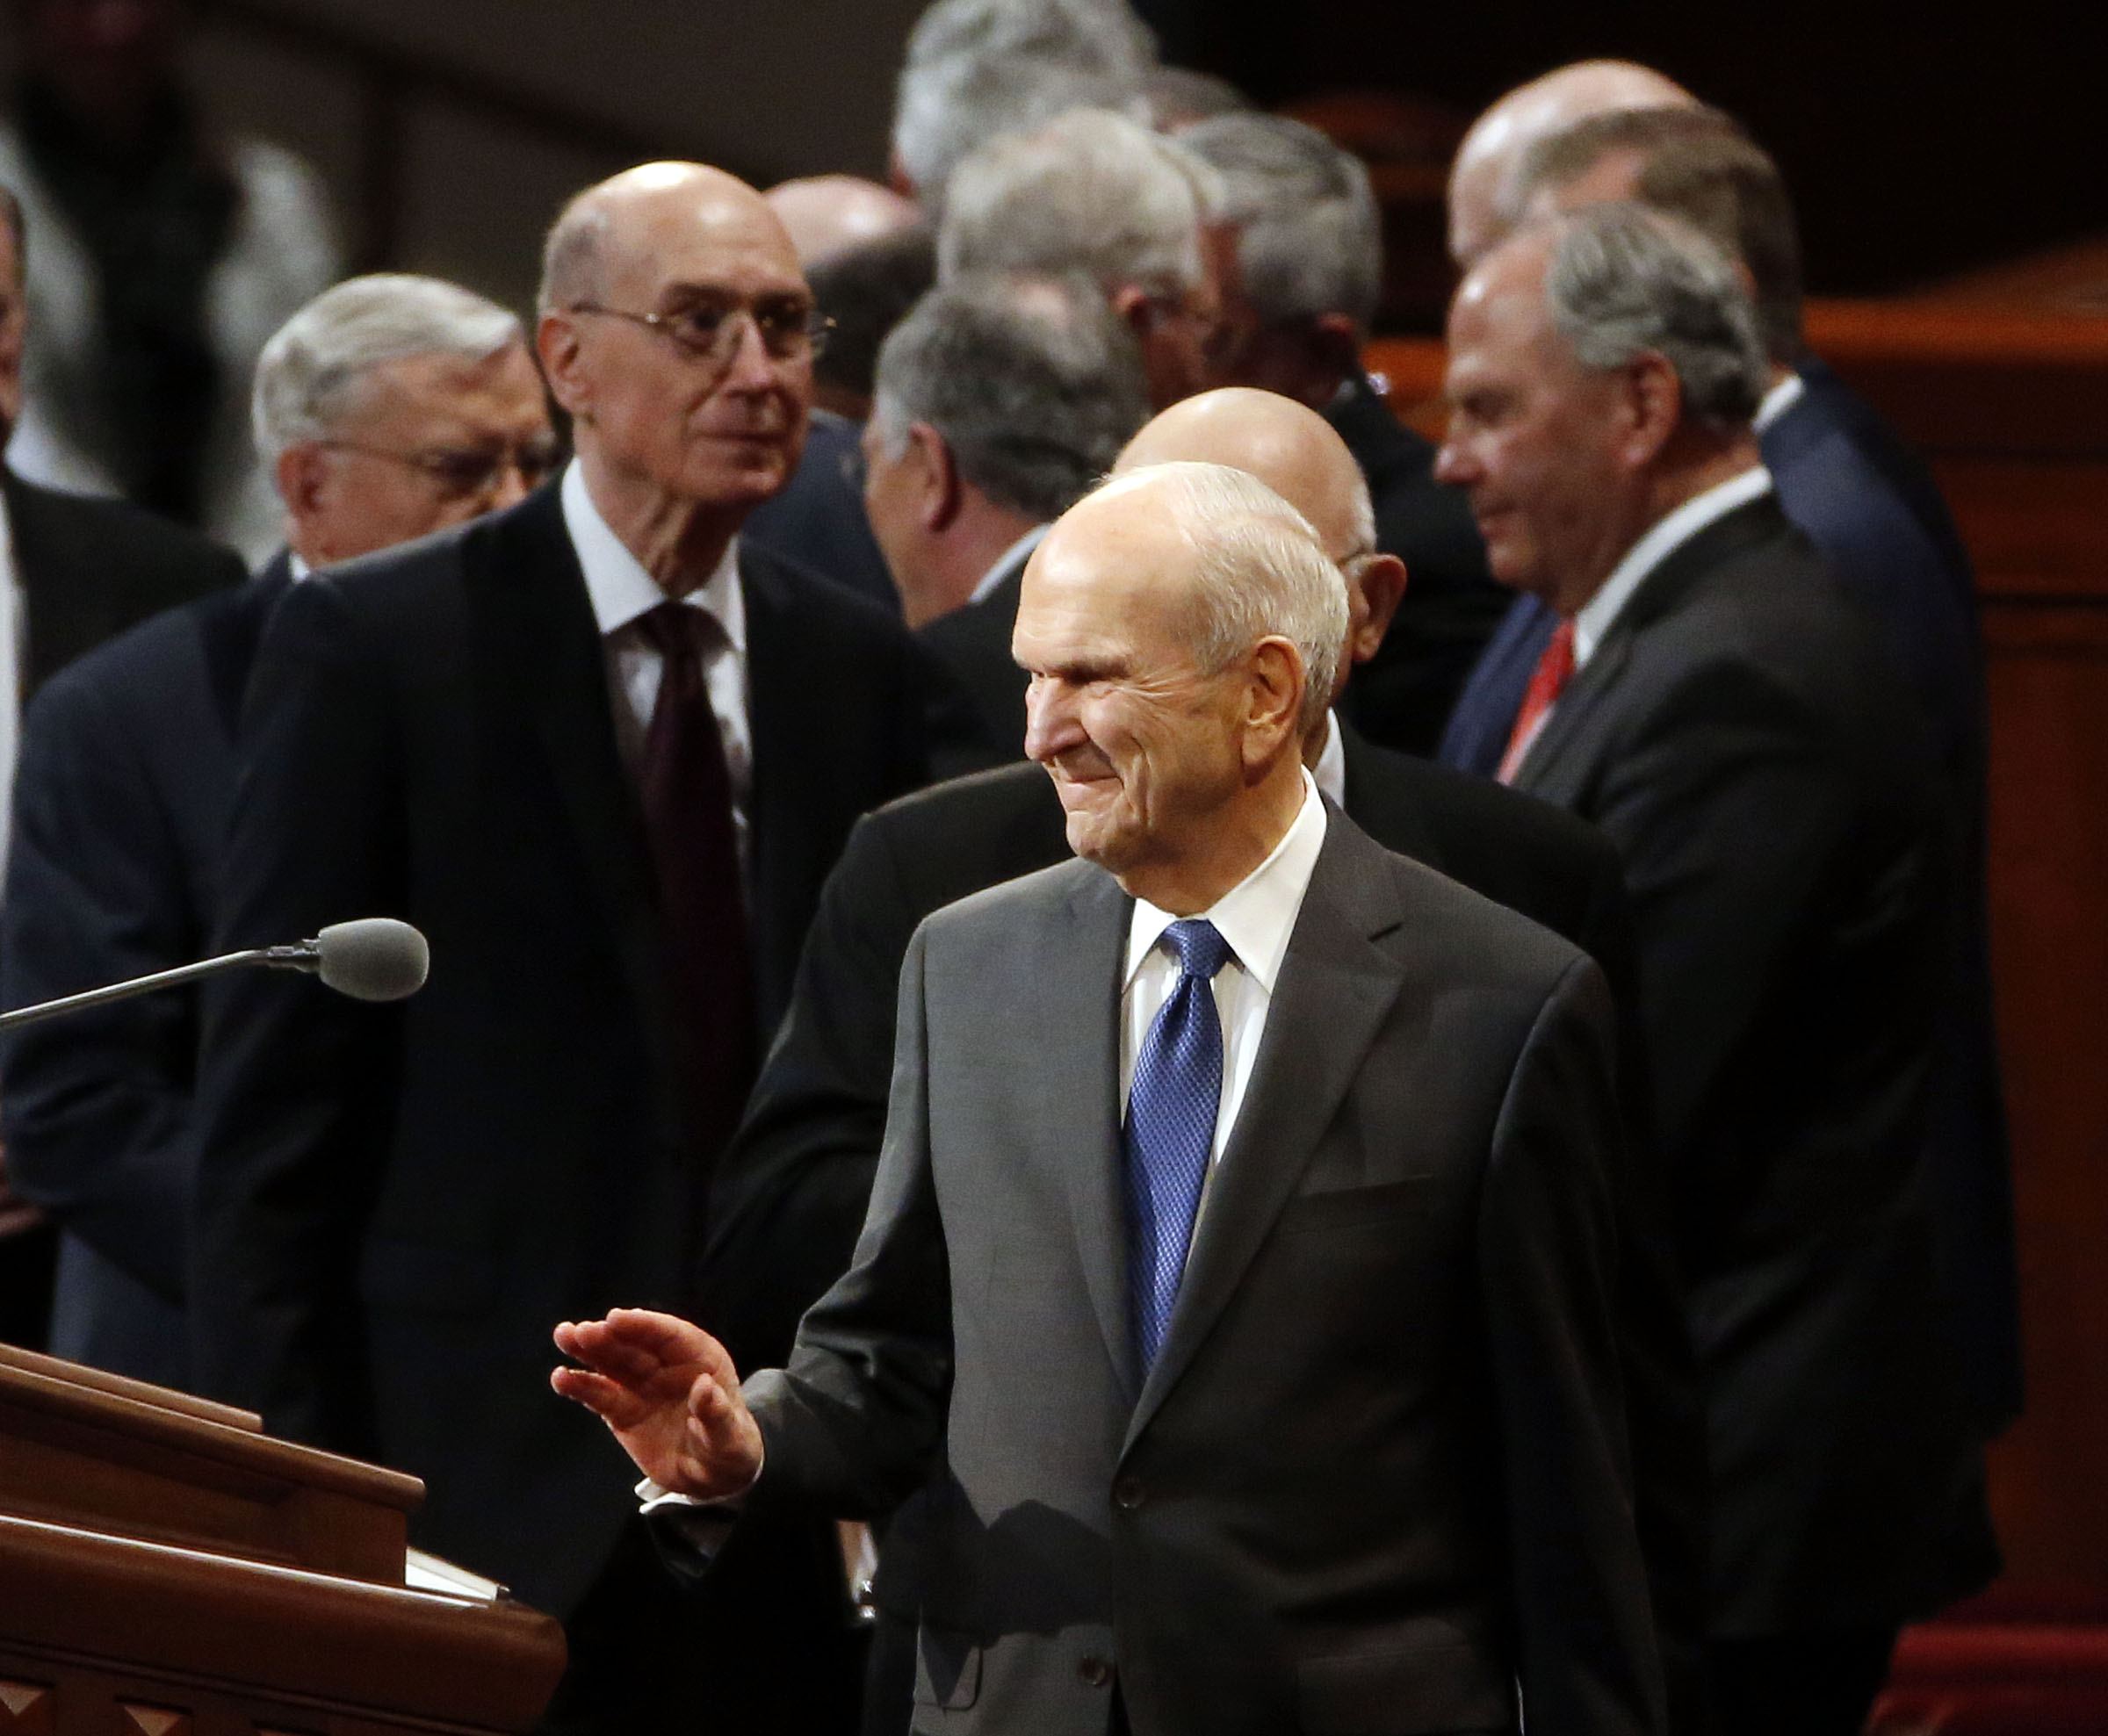 President Russell M. Nelson acknowledges conferencegoers following the Saturday morning session of the Church's 188th Annual General Conference in Salt Lake City on Saturday, March 31, 2018.